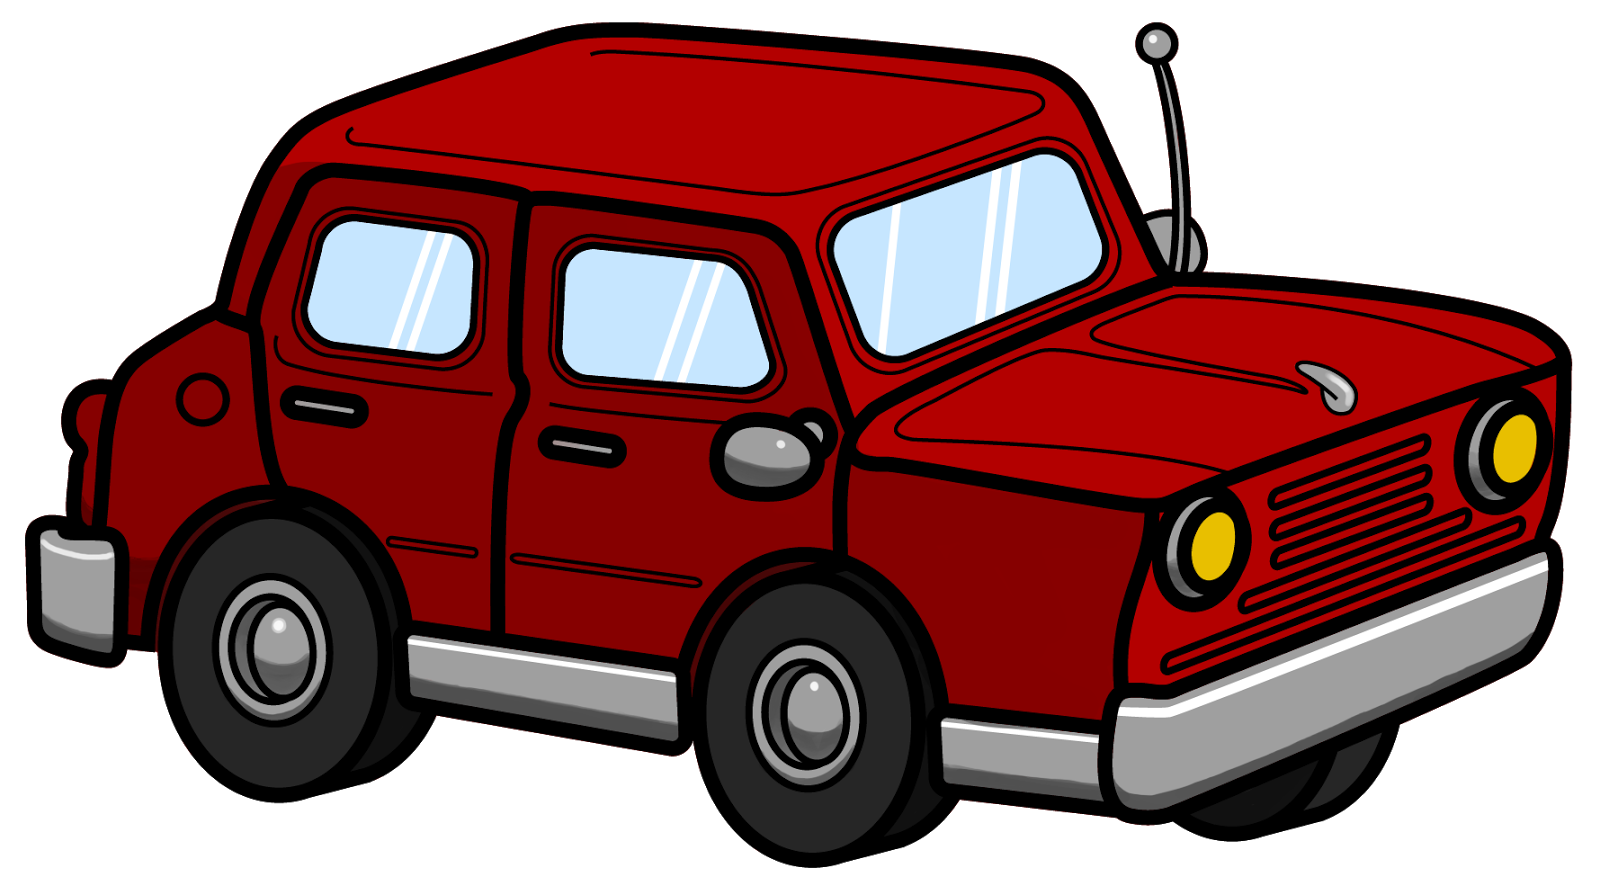 Clipart car vector. Png download free images